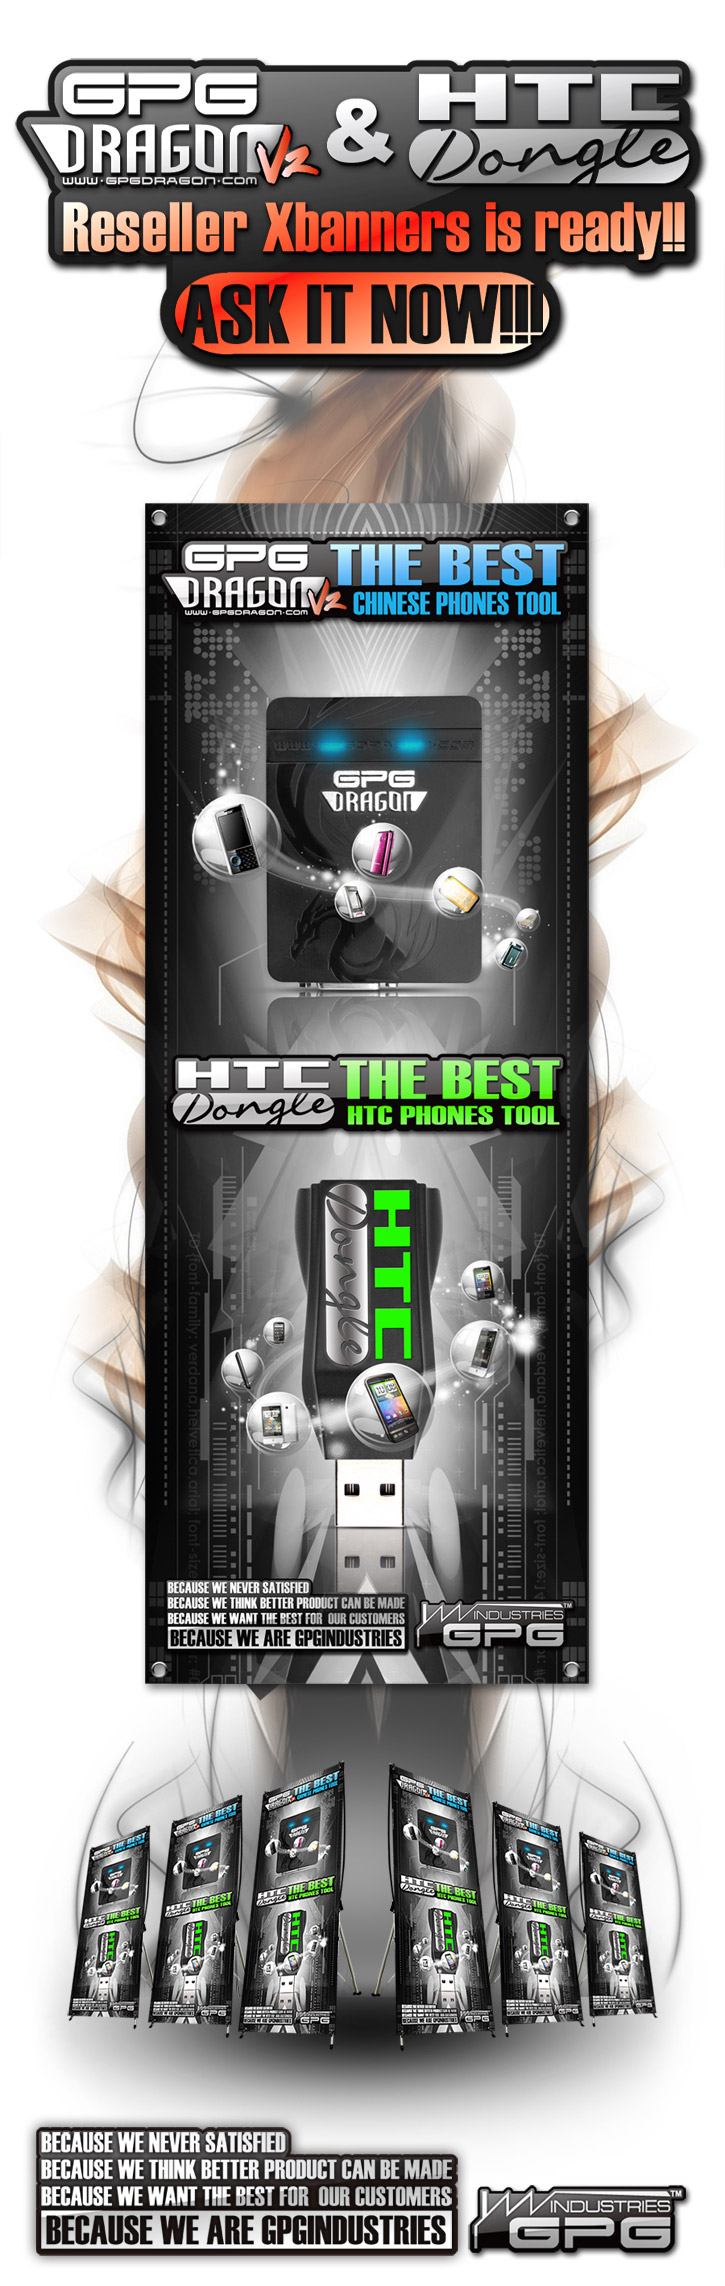 2011 05 11 NEW Xbanner for GPGDRAGONHTCDONGLE 725